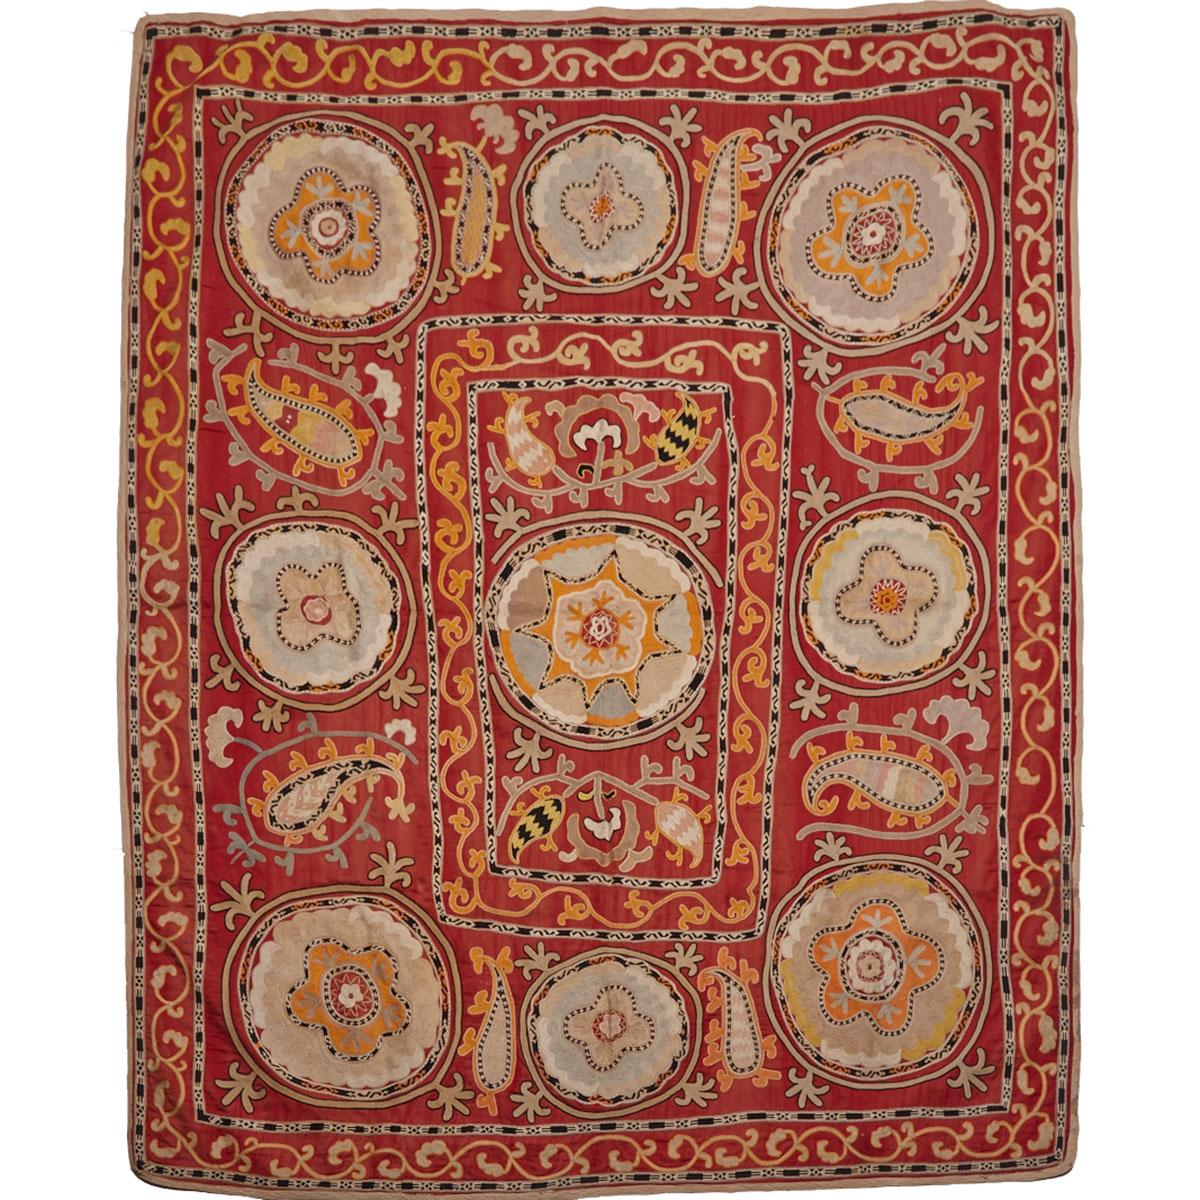 Large Dining Cloth, Sofreh, Persia, 20th Century